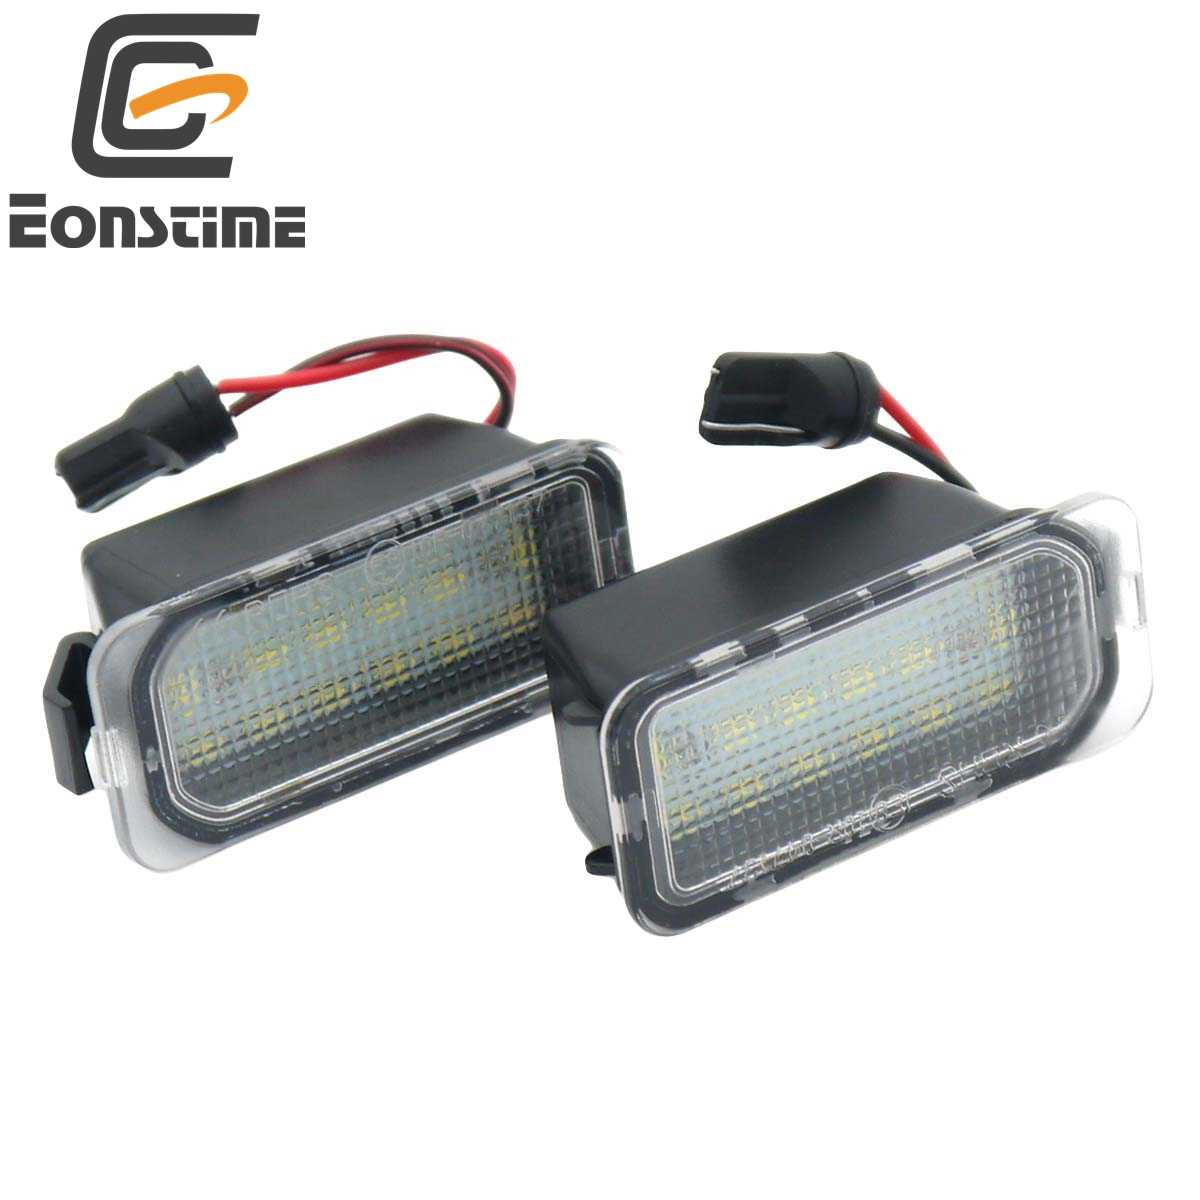 Eonstime 2Pcs 18SMD LED License Plate Number Light Lamp Error Free For Ford Fiesta JA8 Focus DA3 Focus DYB S-max C-max Mondeo 2pcs brand new high quality superb error free 5050 smd 360 degrees led backup reverse light bulbs t15 for jeep grand cherokee